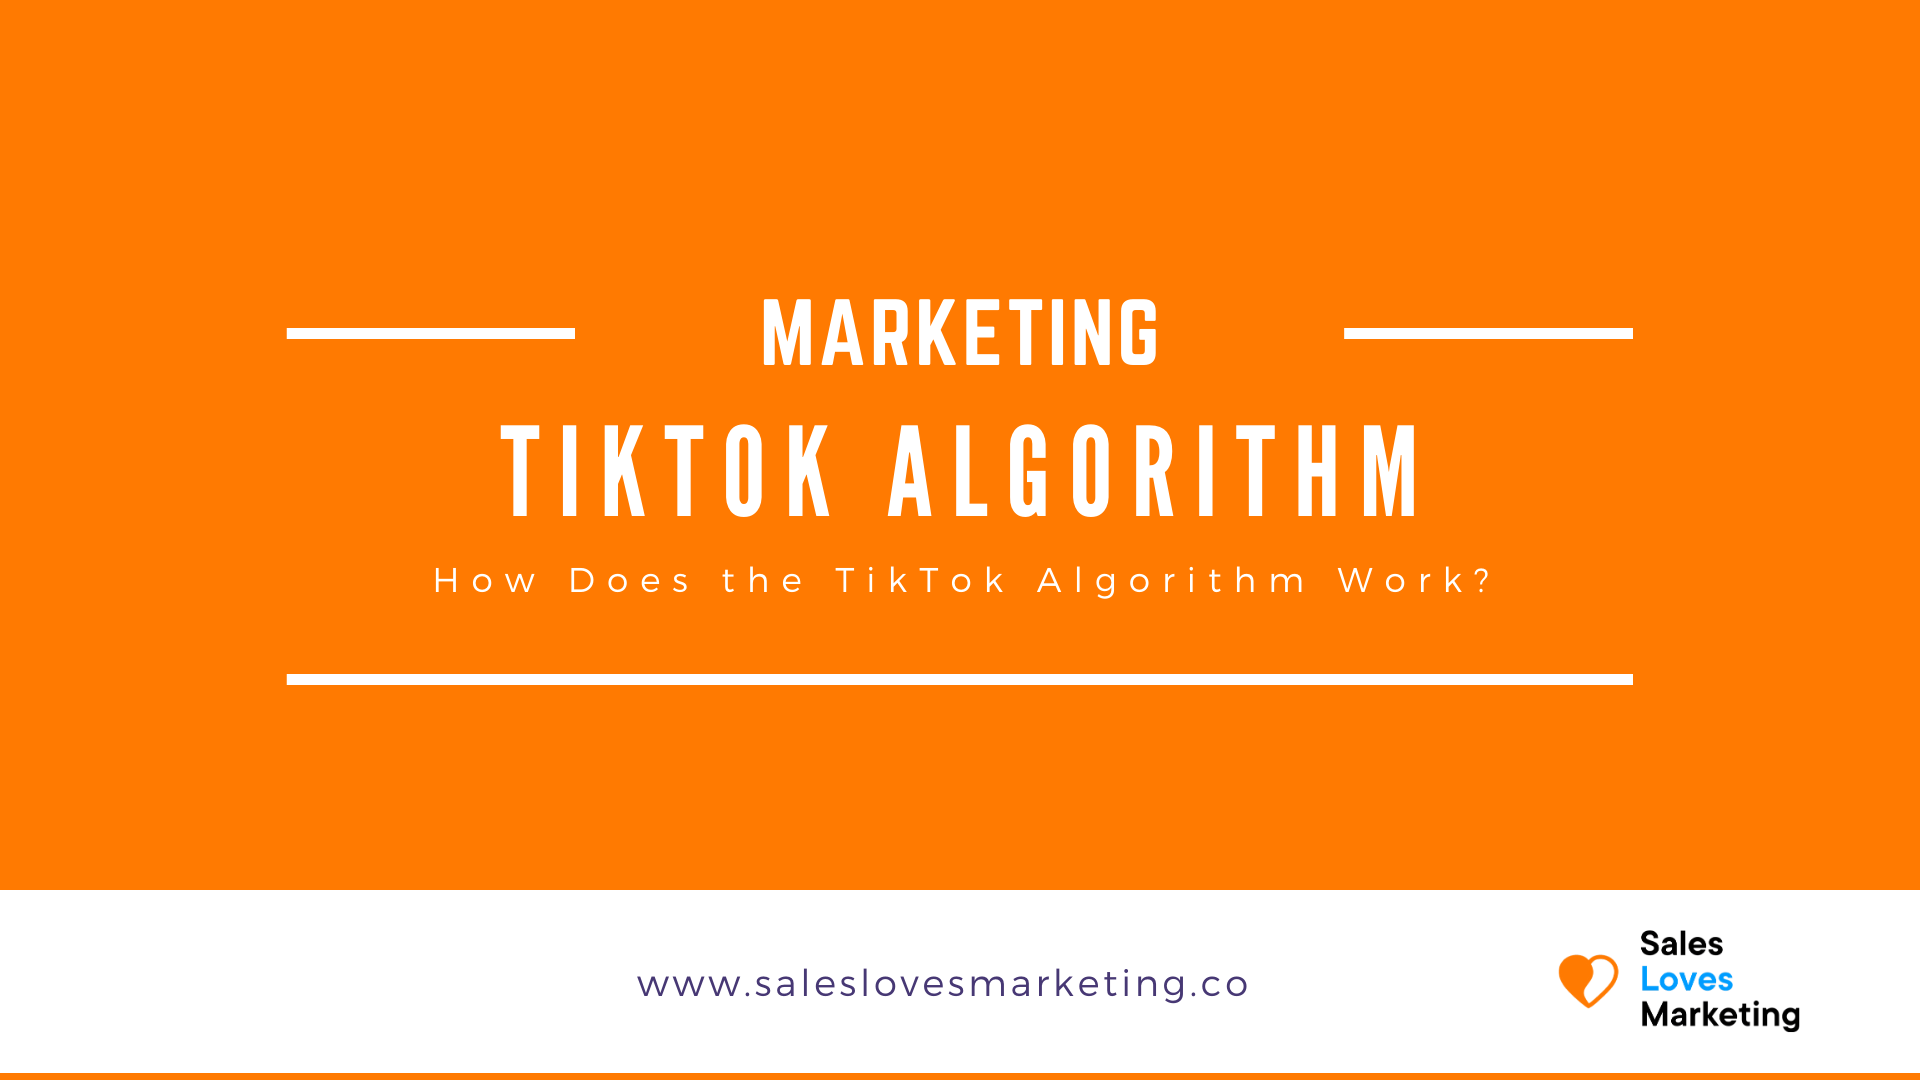 Get to know how the tiktok algorithm works and start growing your presence